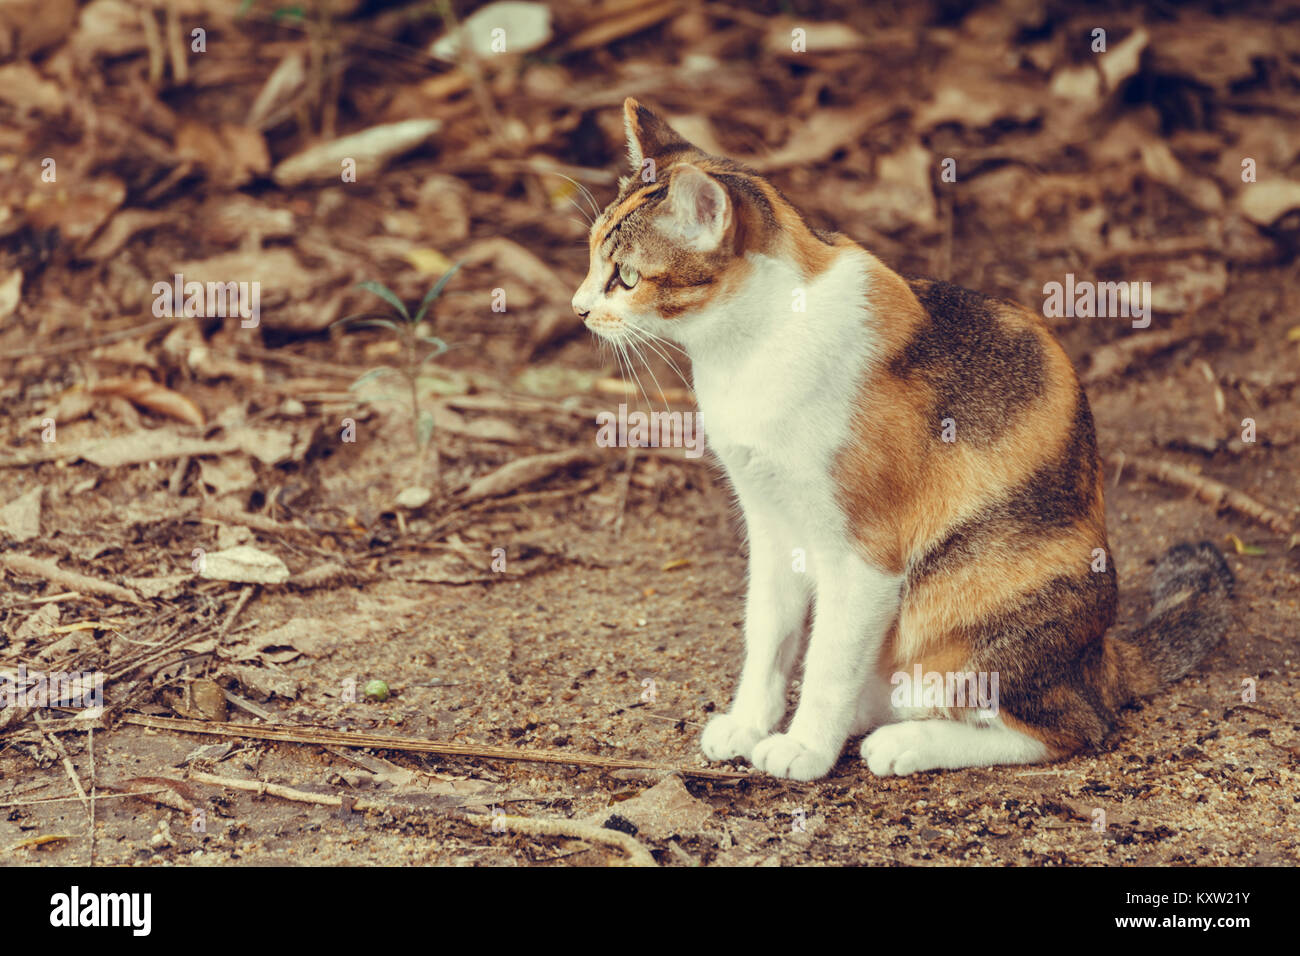 calico cat sitting and waiting on the leafy ground in the forest at summer time, warm tone photo - Stock Image